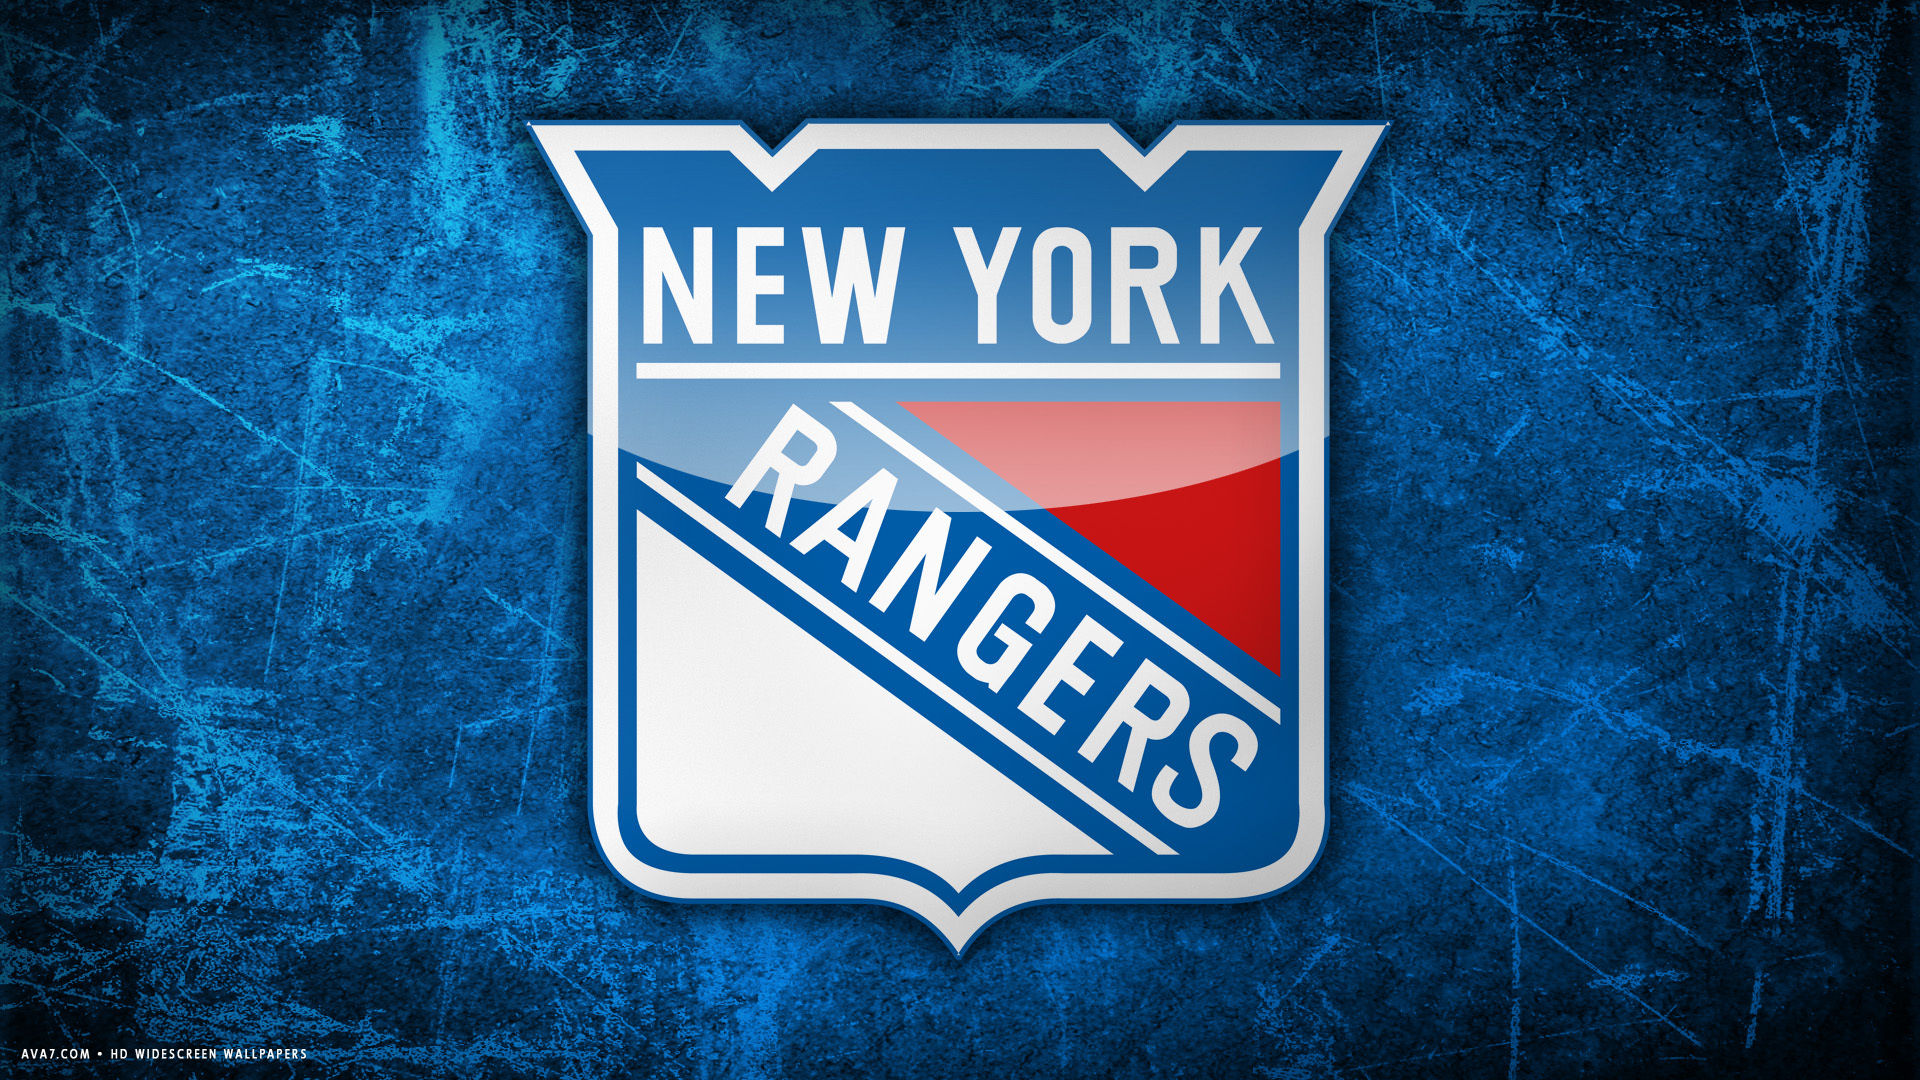 Texas Rangers Wallpaper Iphone X New York Rangers Nfl Hockey Team Hd Widescreen Wallpaper